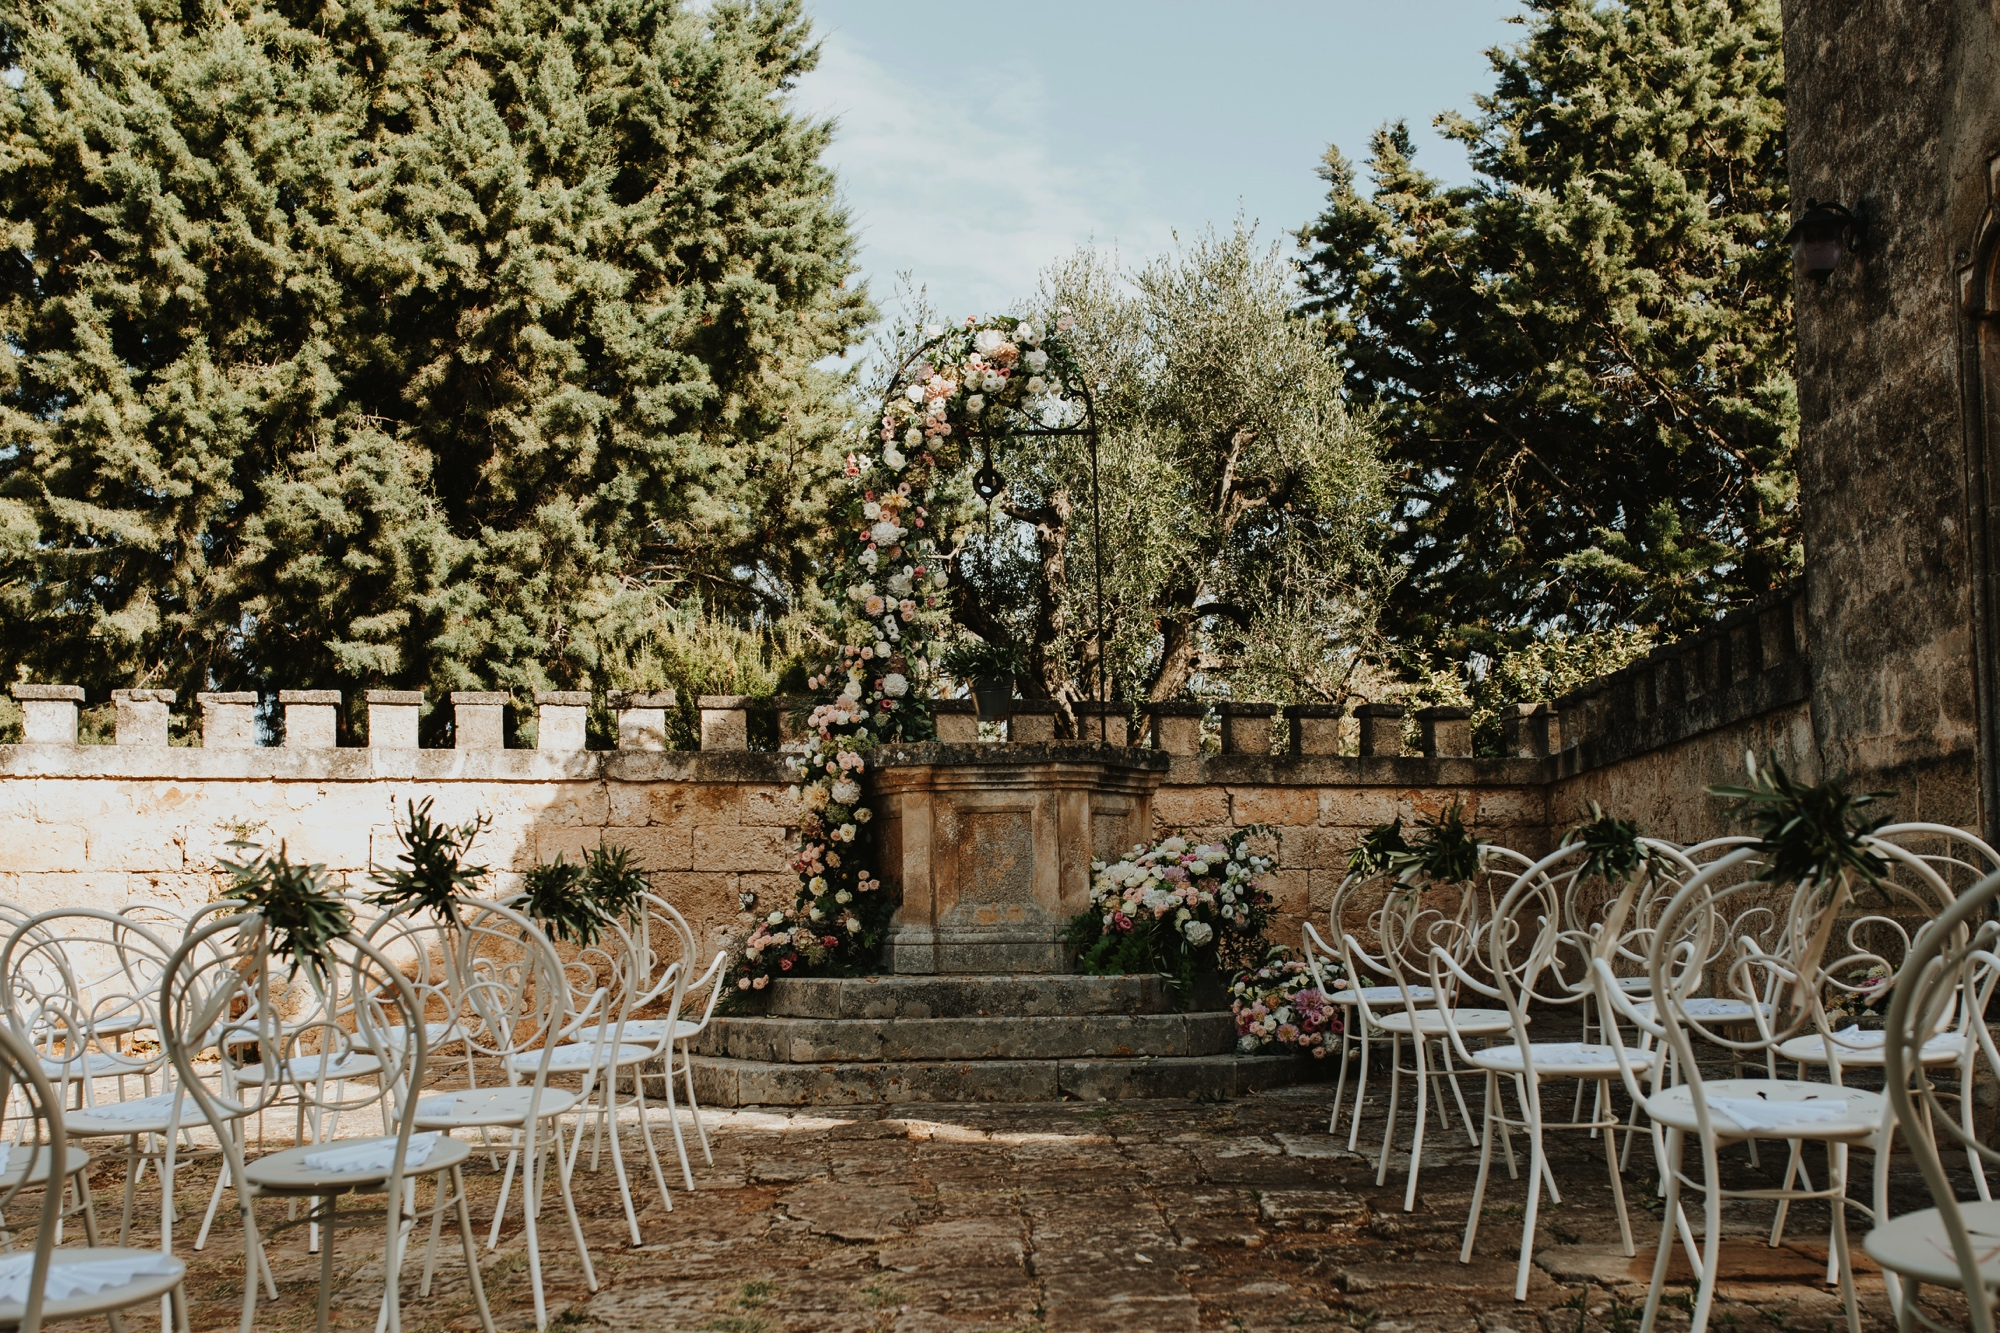 0000000033_Rob and Lucy-216_Weddings_Destination_Italy_got_Just_Engaged.jpg